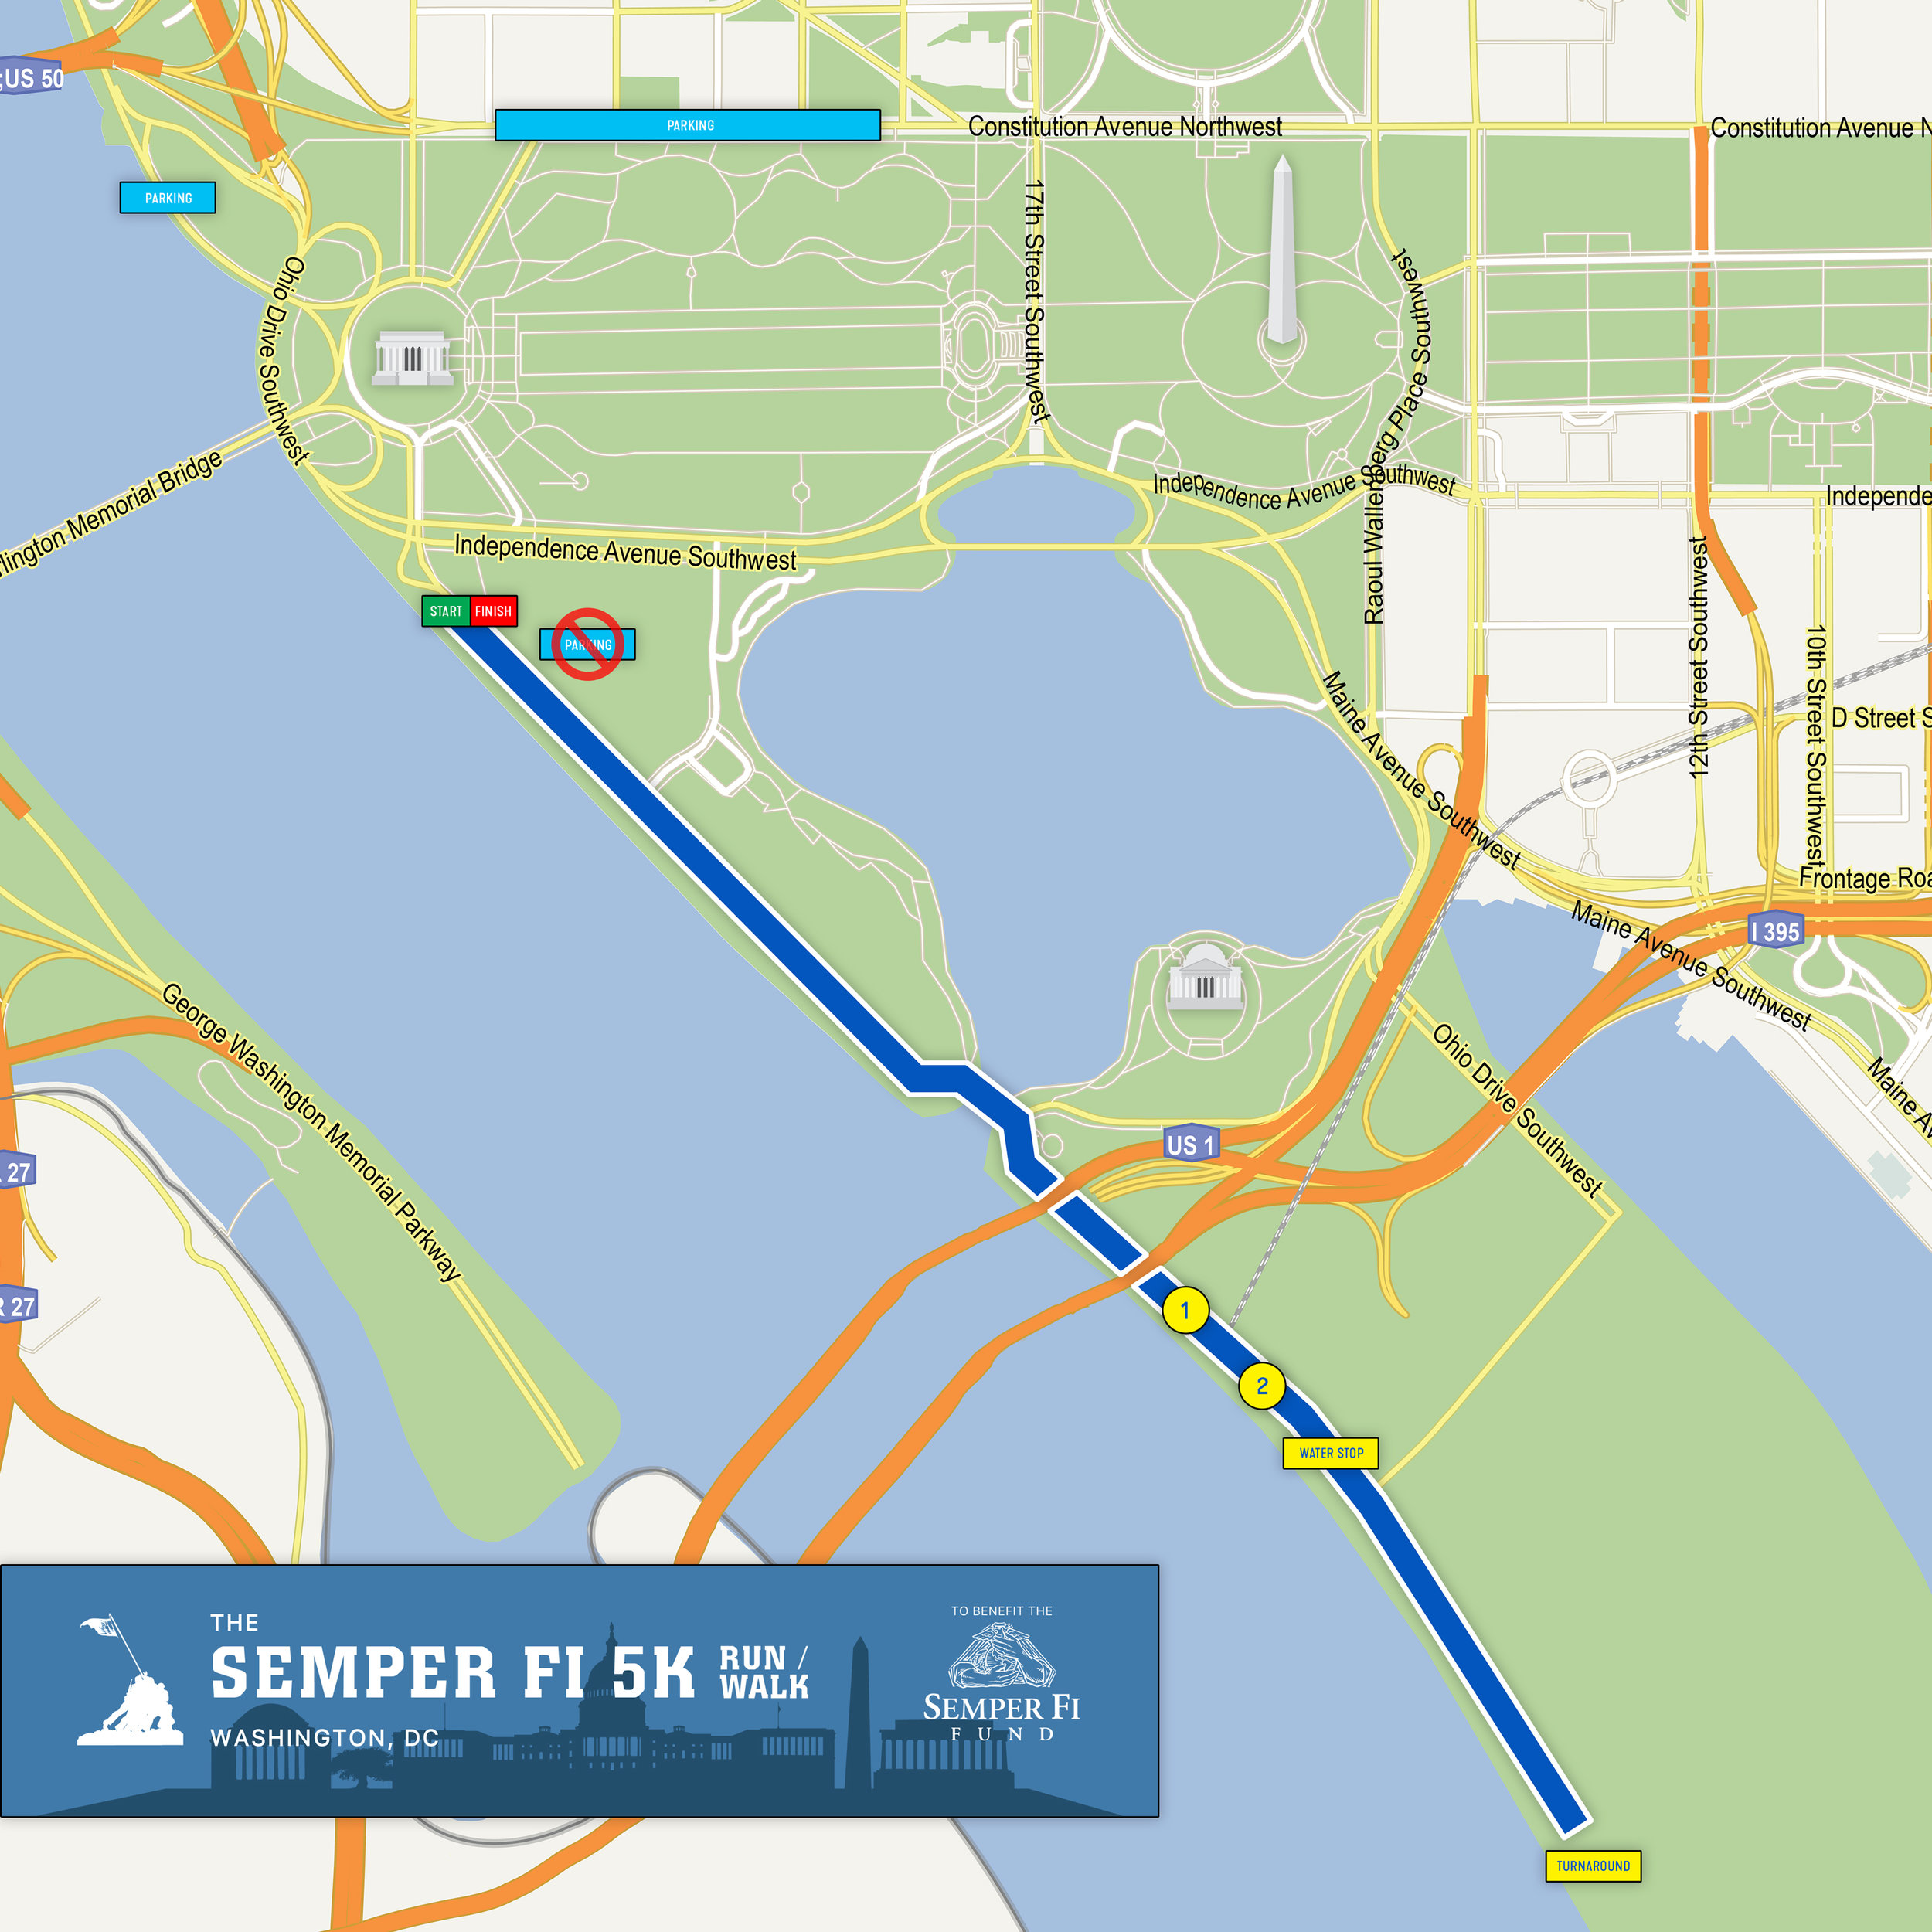 SEE COURSE MAP